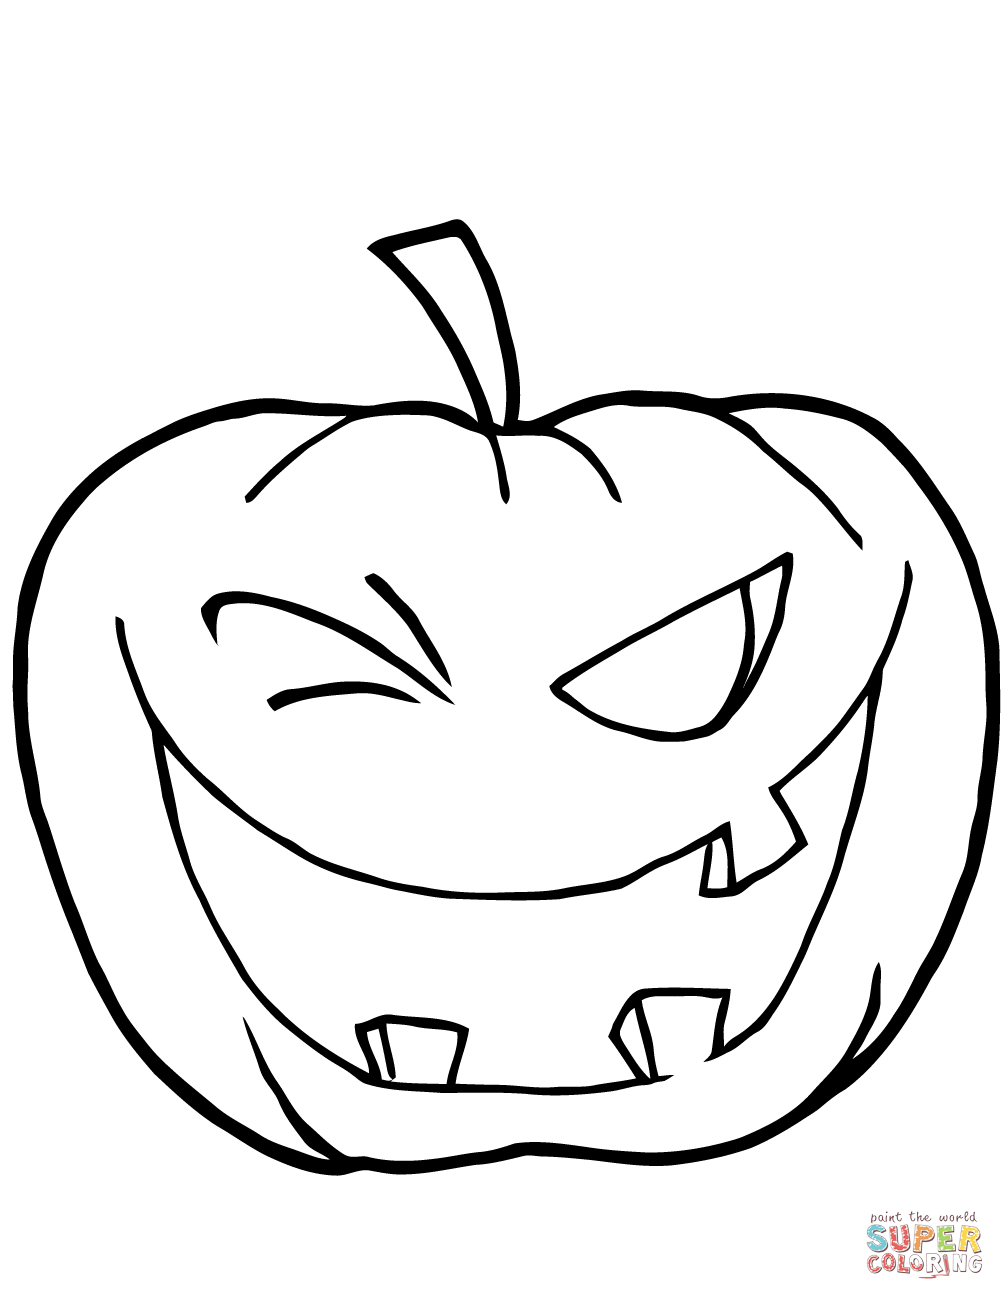 Halloween Pumpkin Coloring Pages Printables Halloween Pumpkin Winking Coloring Page Free Printable Coloring Pages